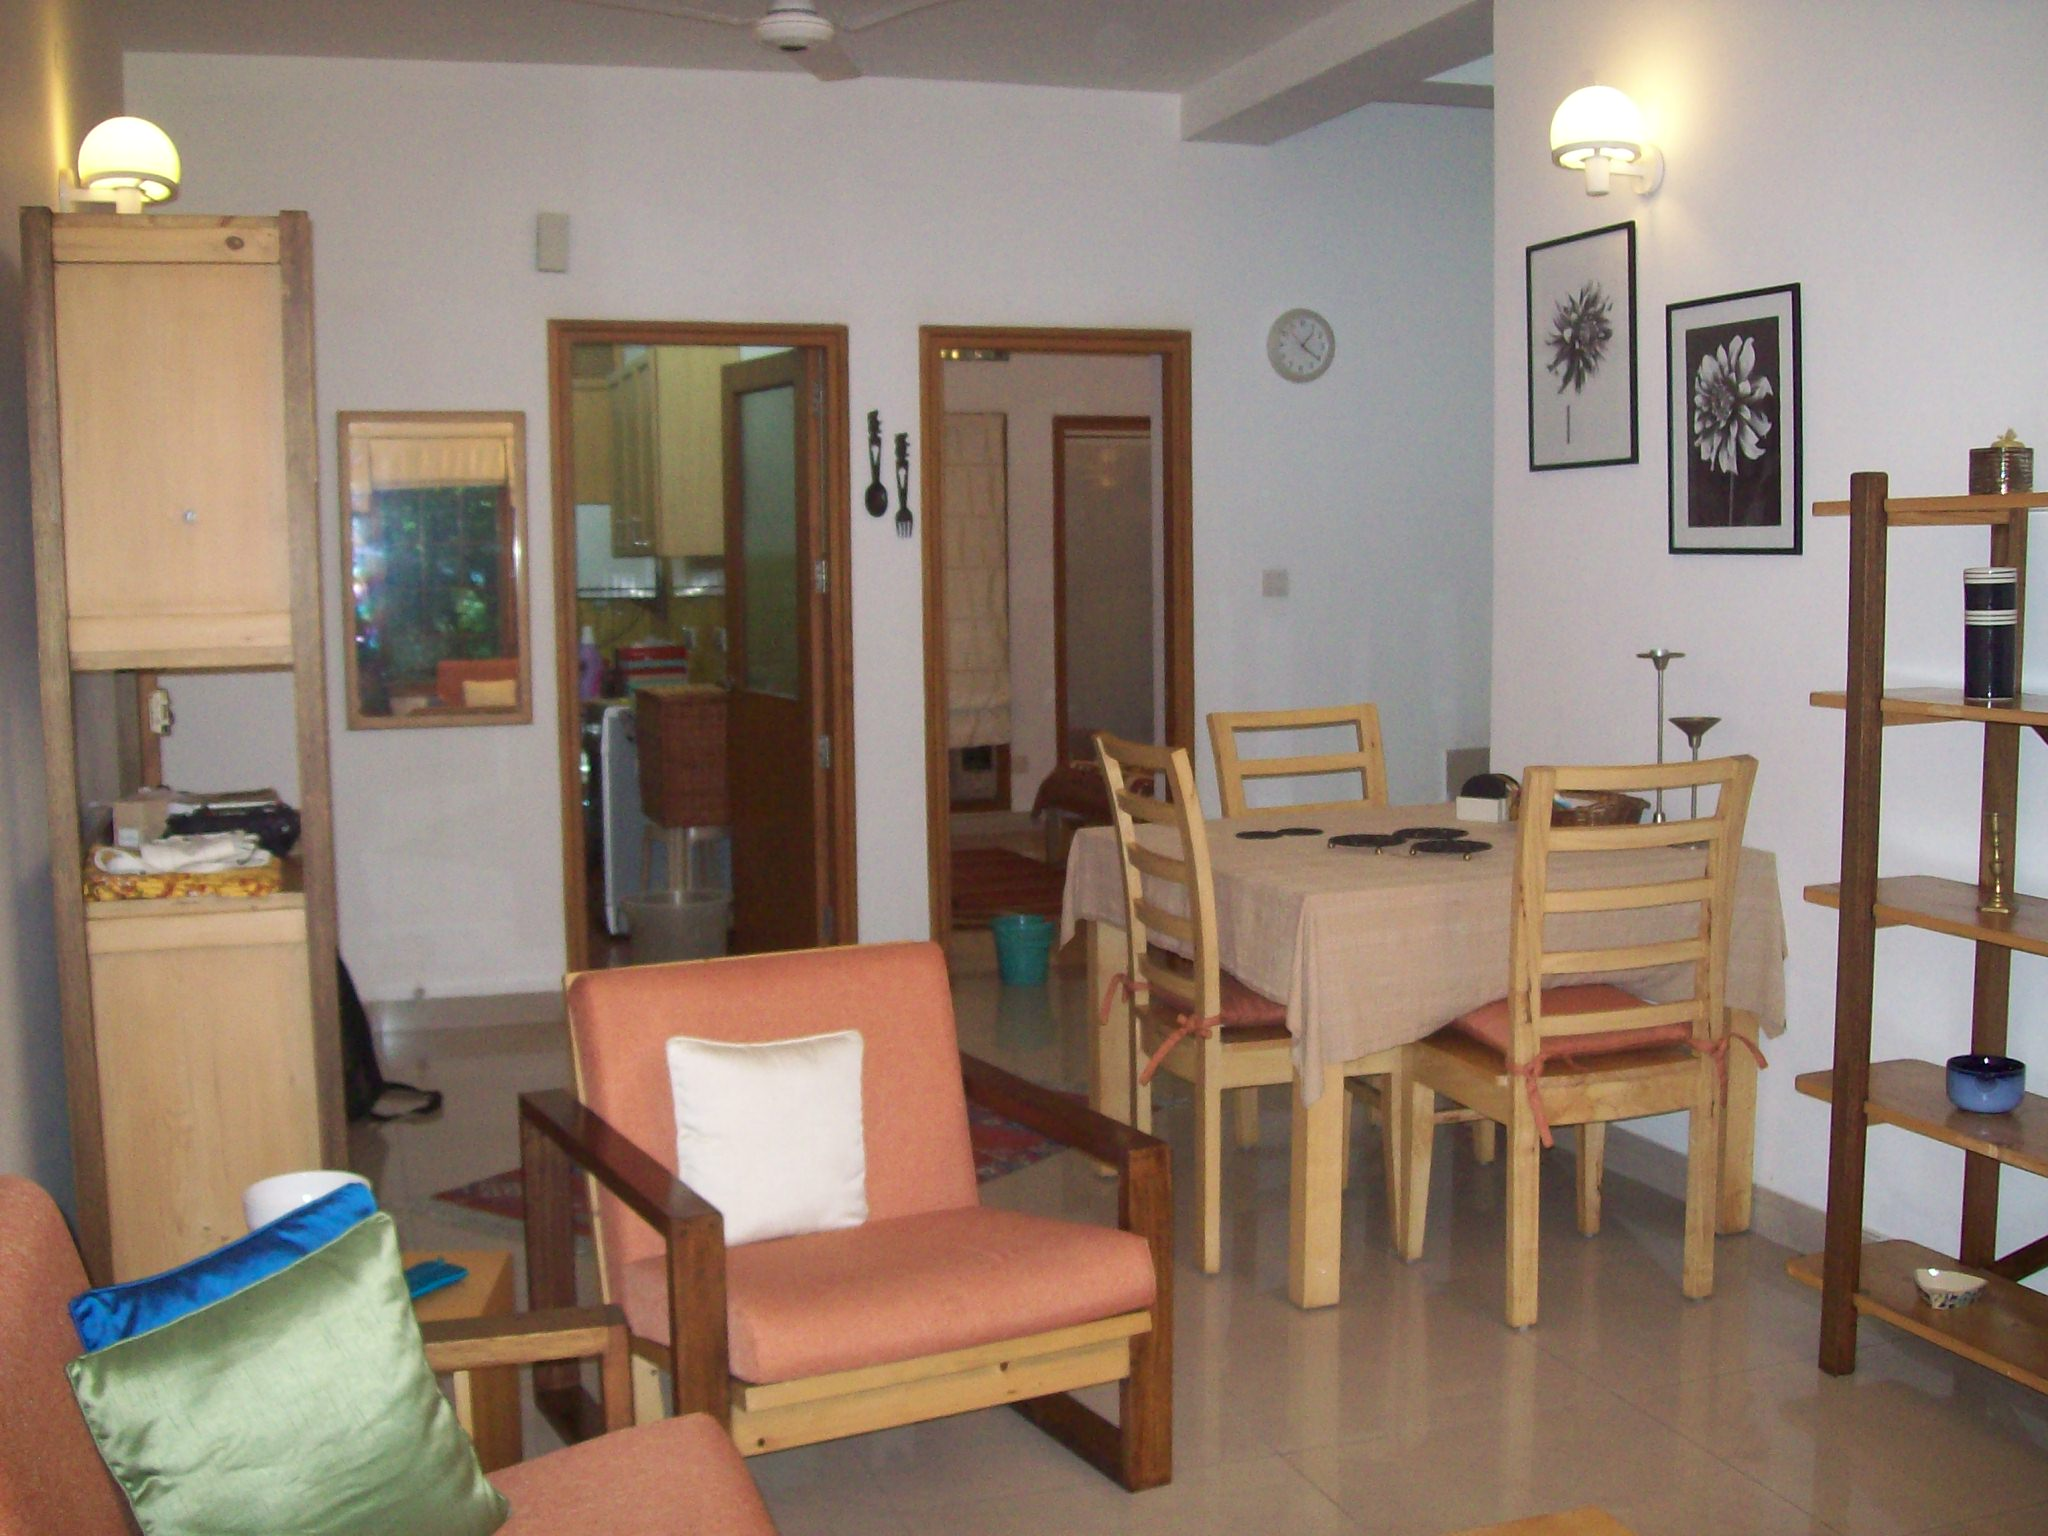 The Caravanserai apartments are Located in and around vasant kunj, vasant vihar and shanti kunj  This  two-bedroom serviced apartment is 0 sq.m ,  and can sleep 5 people maximum.  The apartment has 1